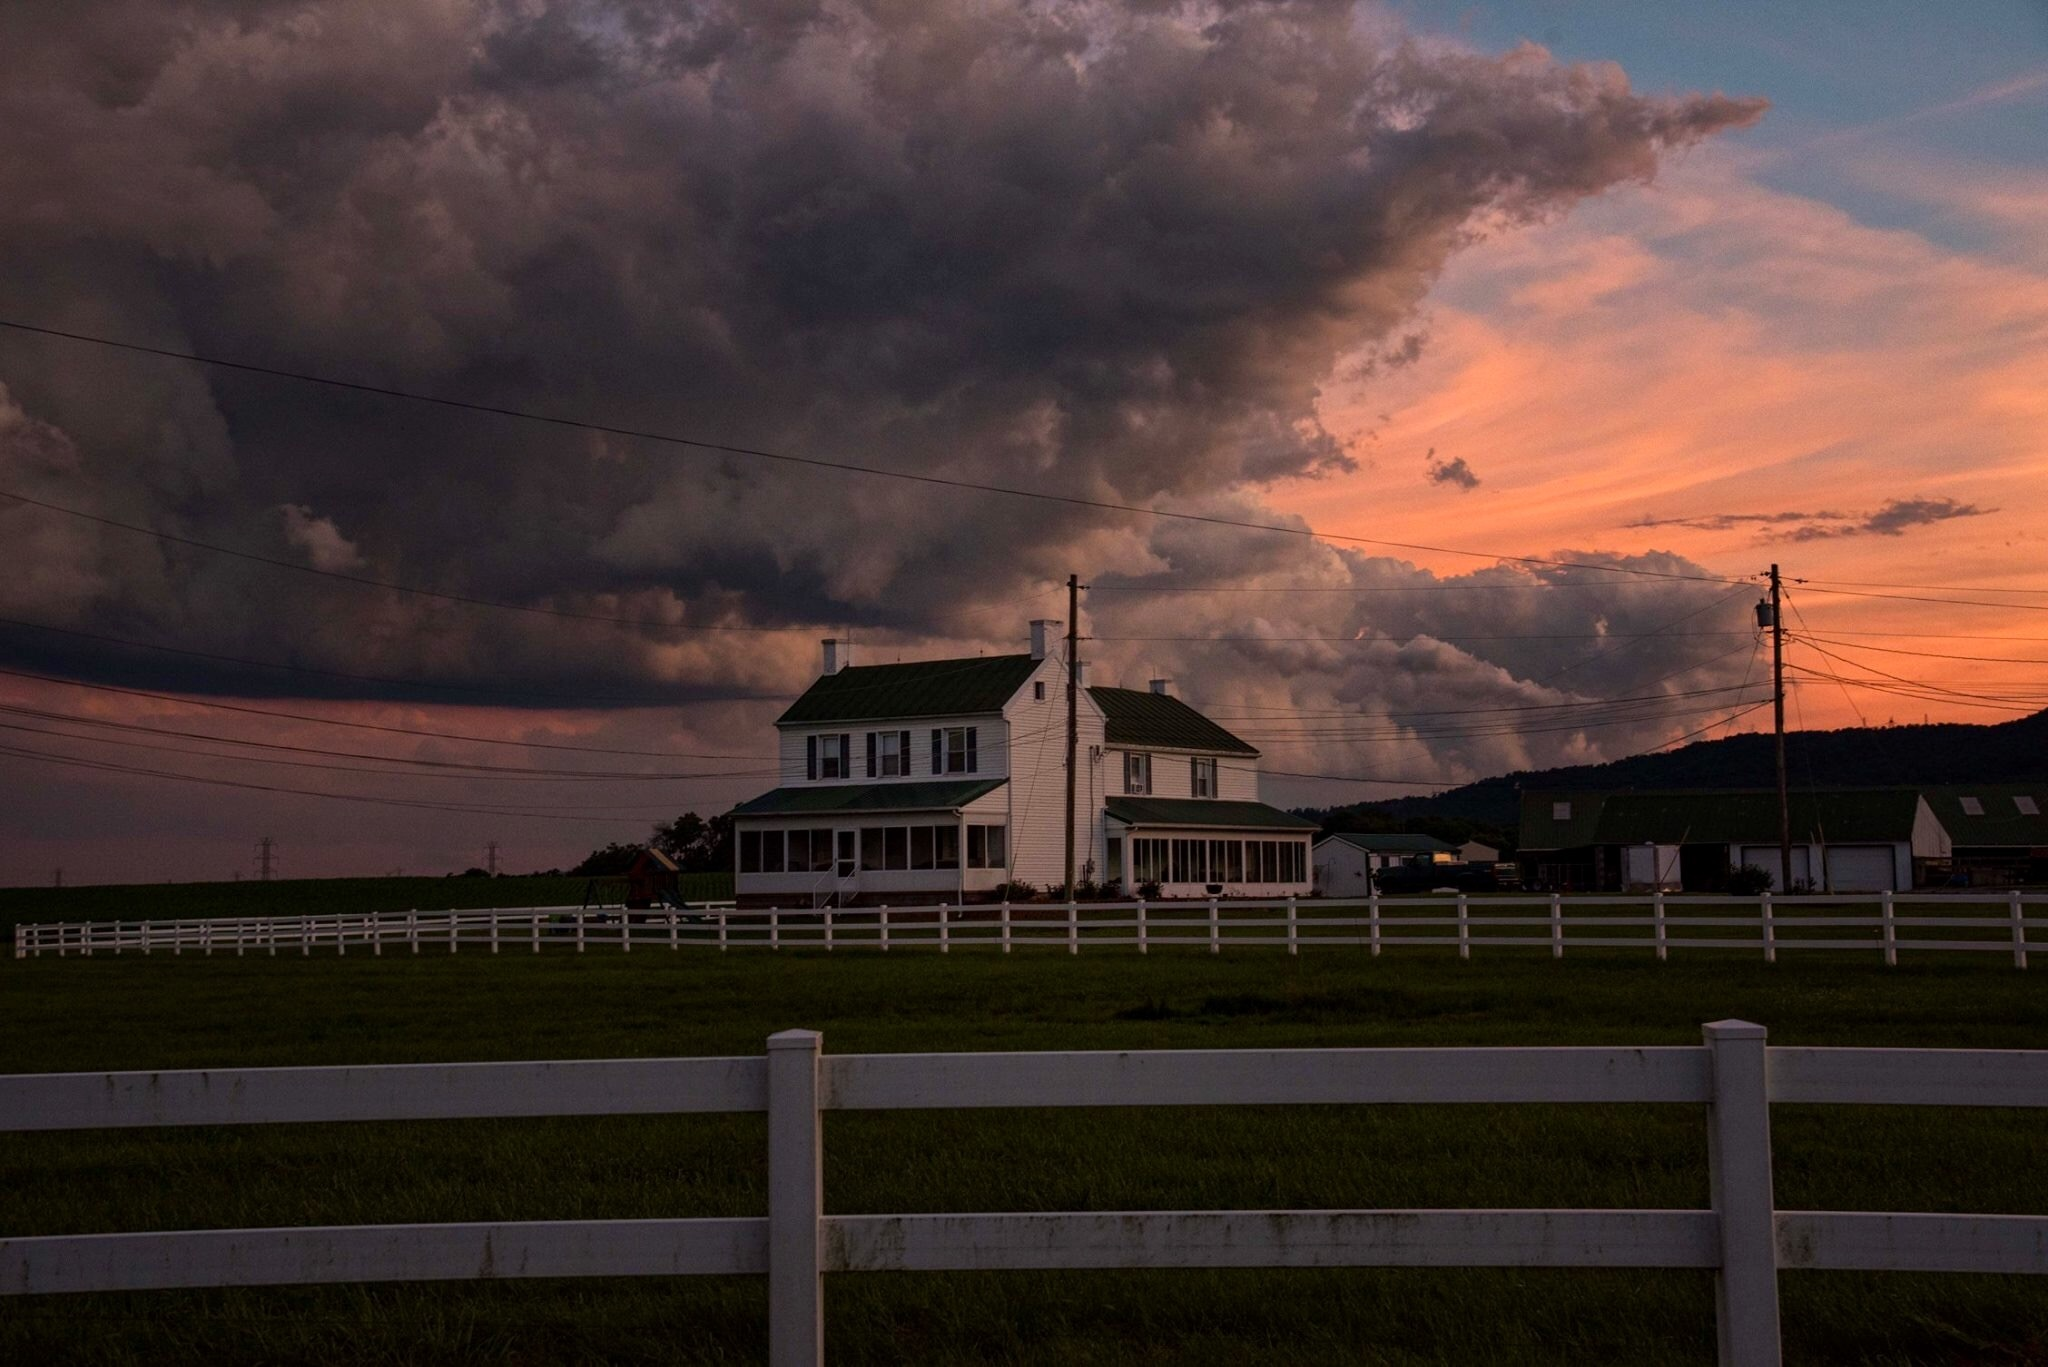 Stormy skies by Valerie Dyer